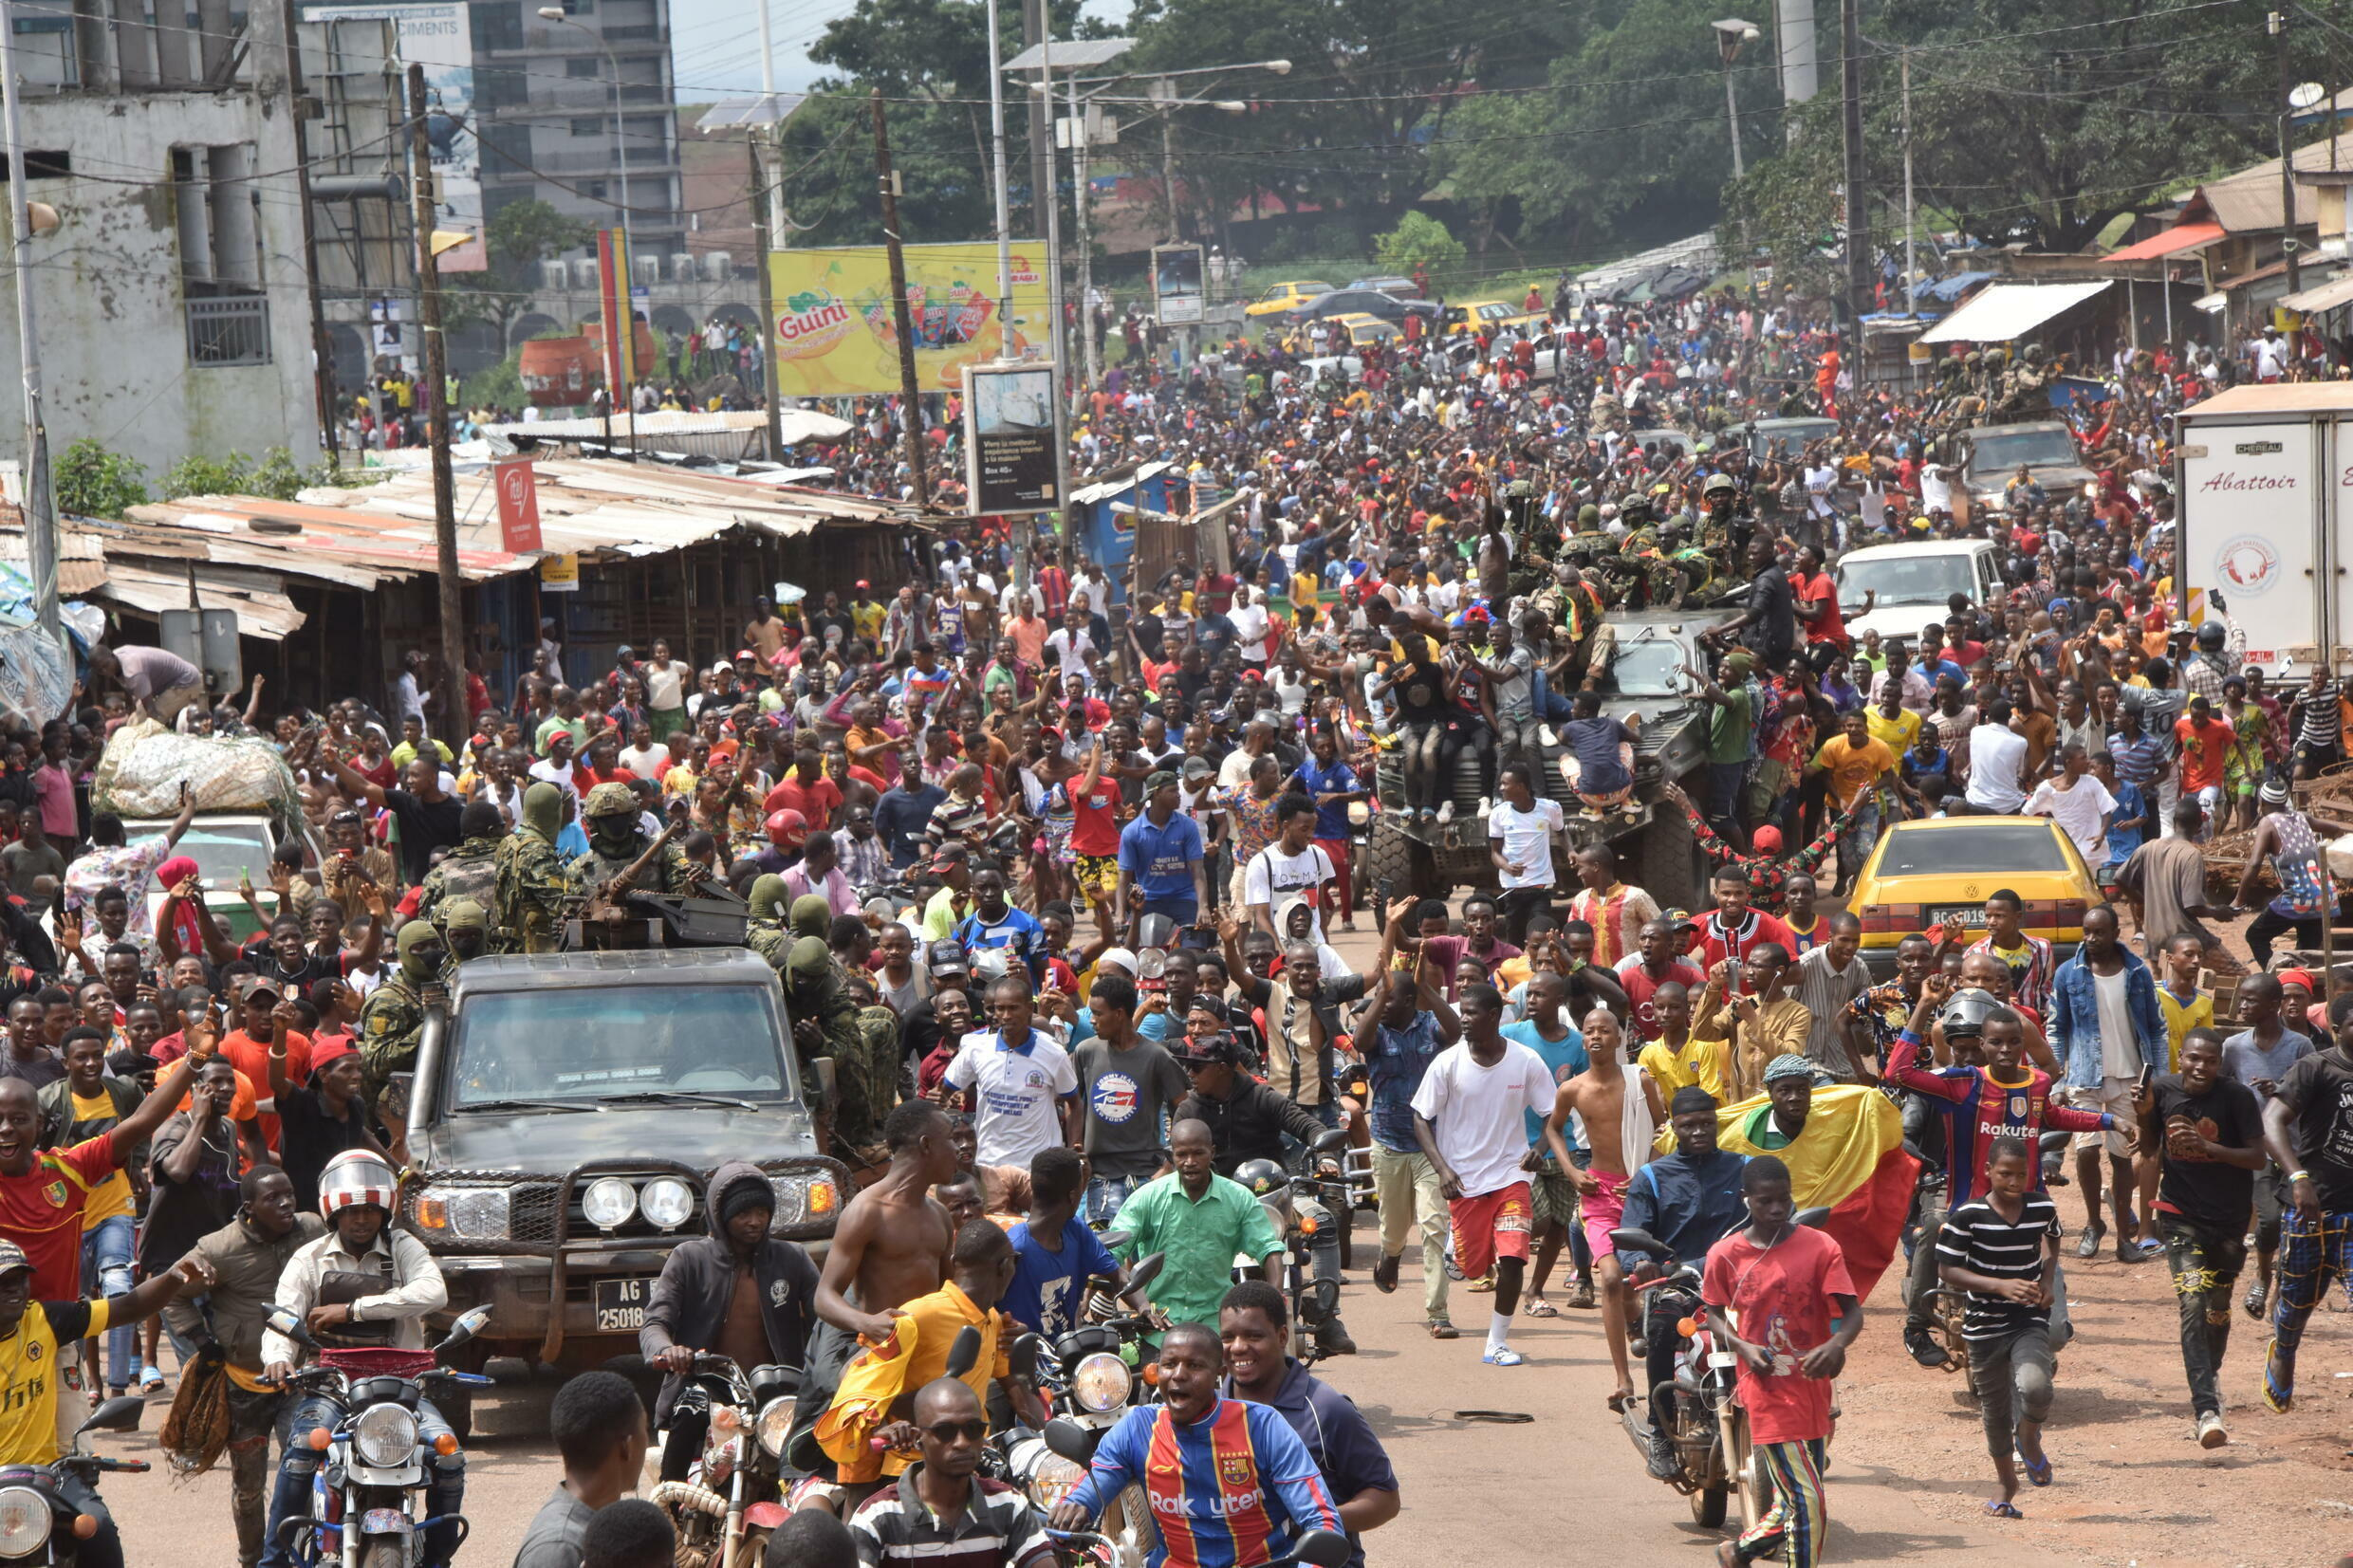 Jubilation erupted in some districts of Conakry after the military took power